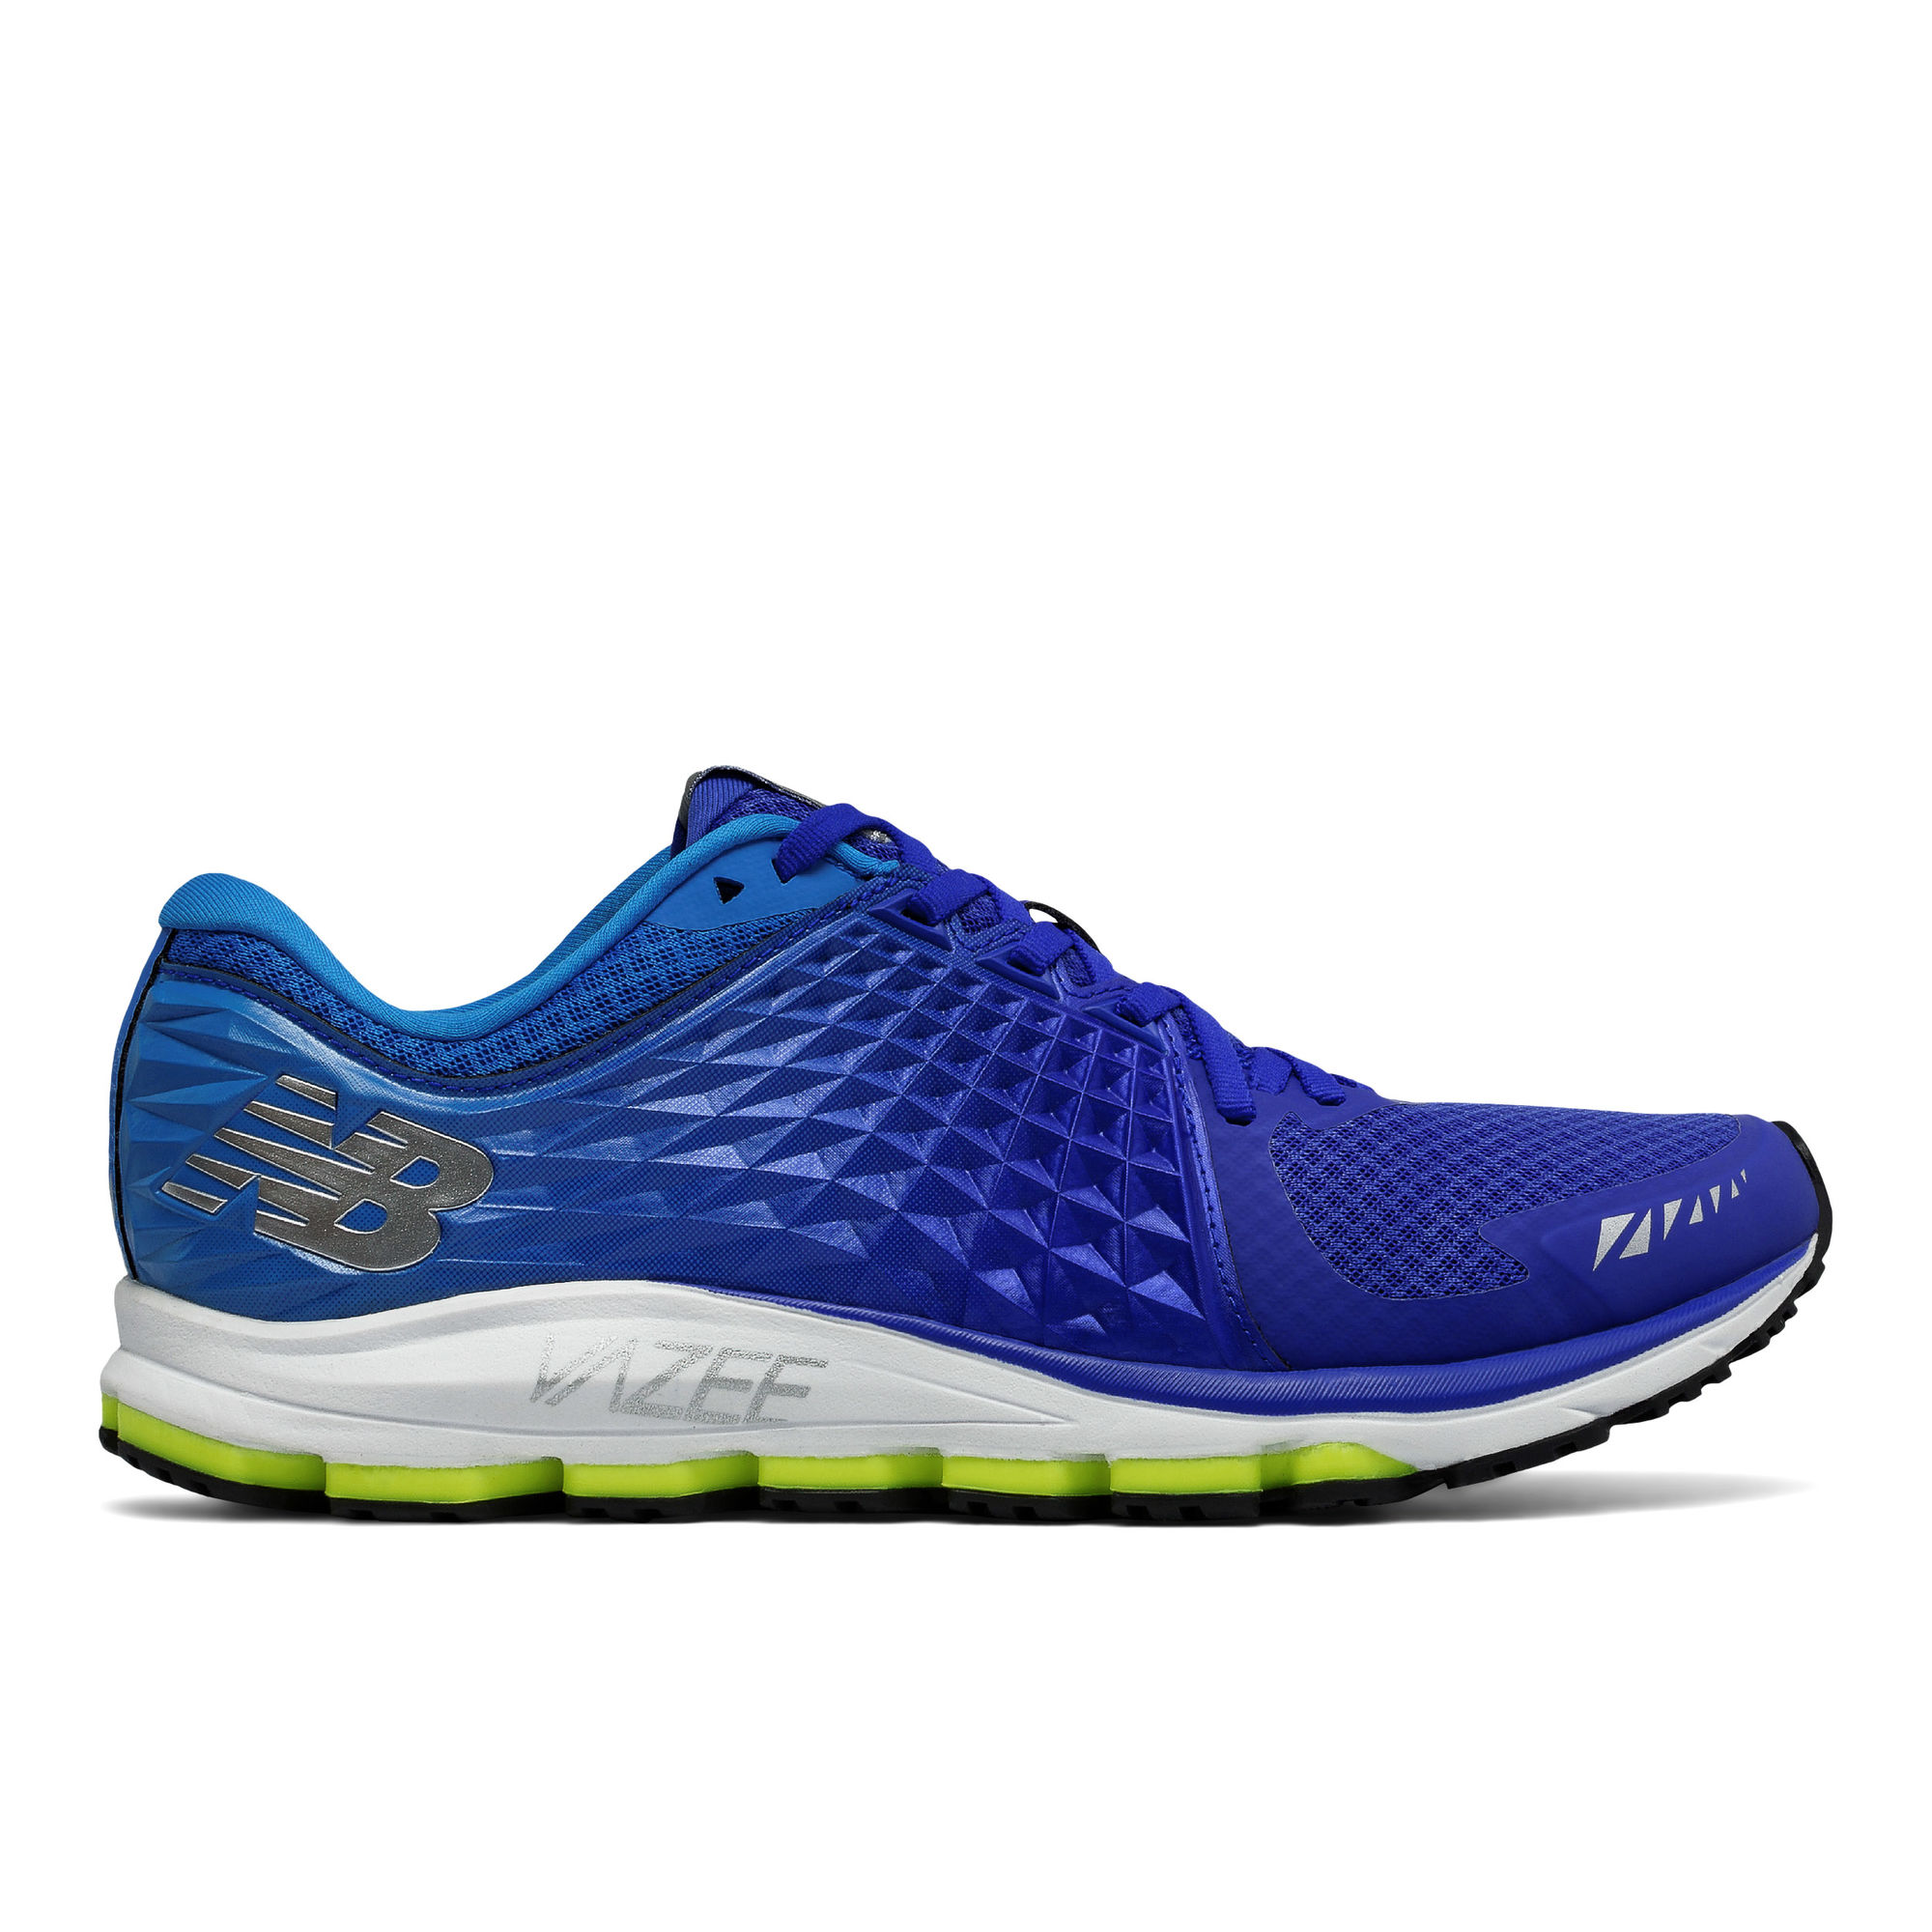 New Balance Vazee 2090 V1 in Bright Blue